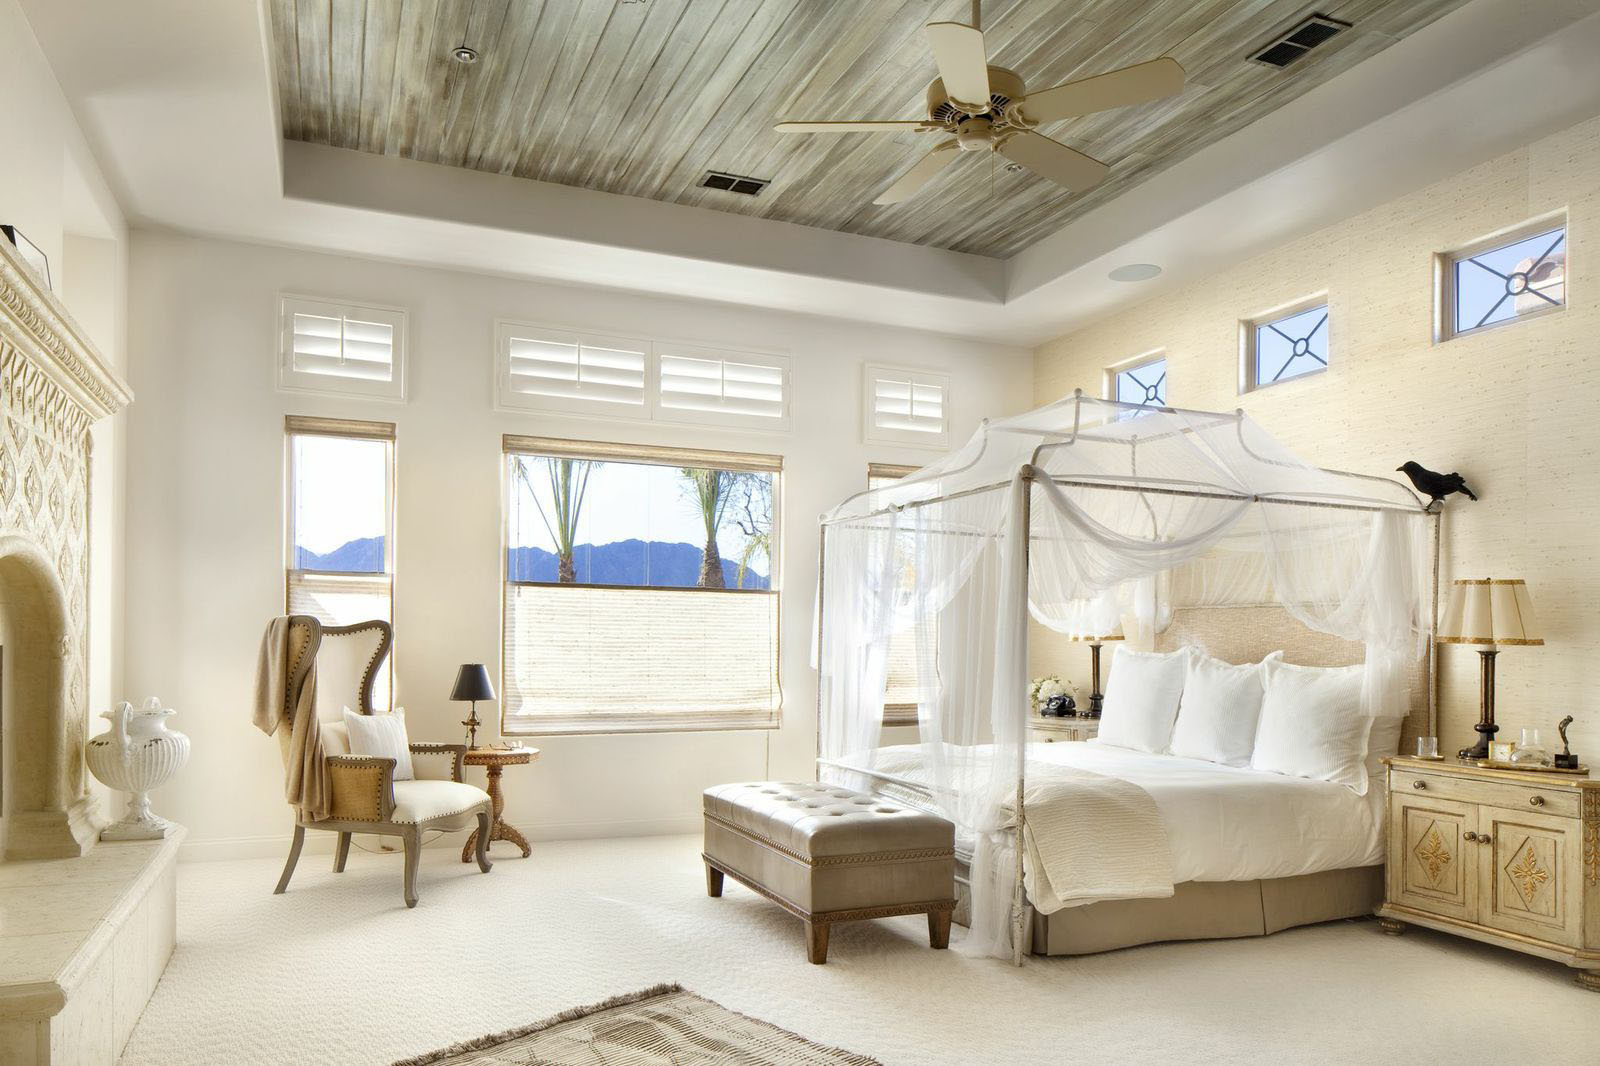 35 luxury bedrooms flaunting decorative canopy beds - Canopy bed in small room ...